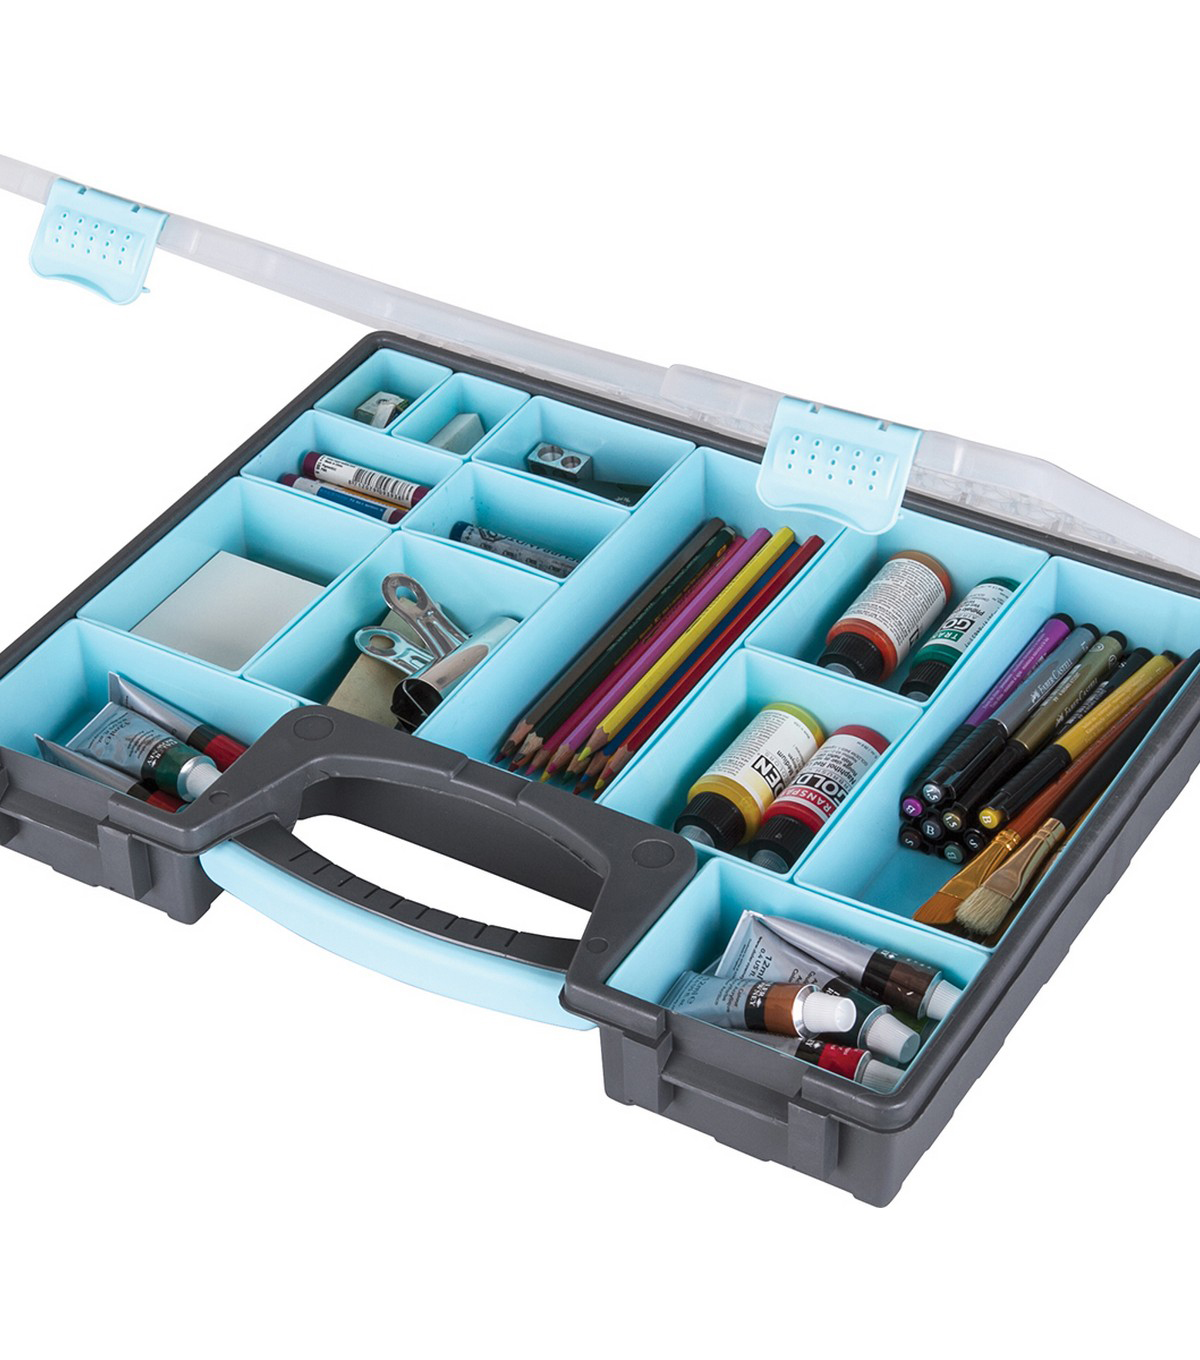 ArtBin Large Quick View Carrying Case with Lift-Out Bins